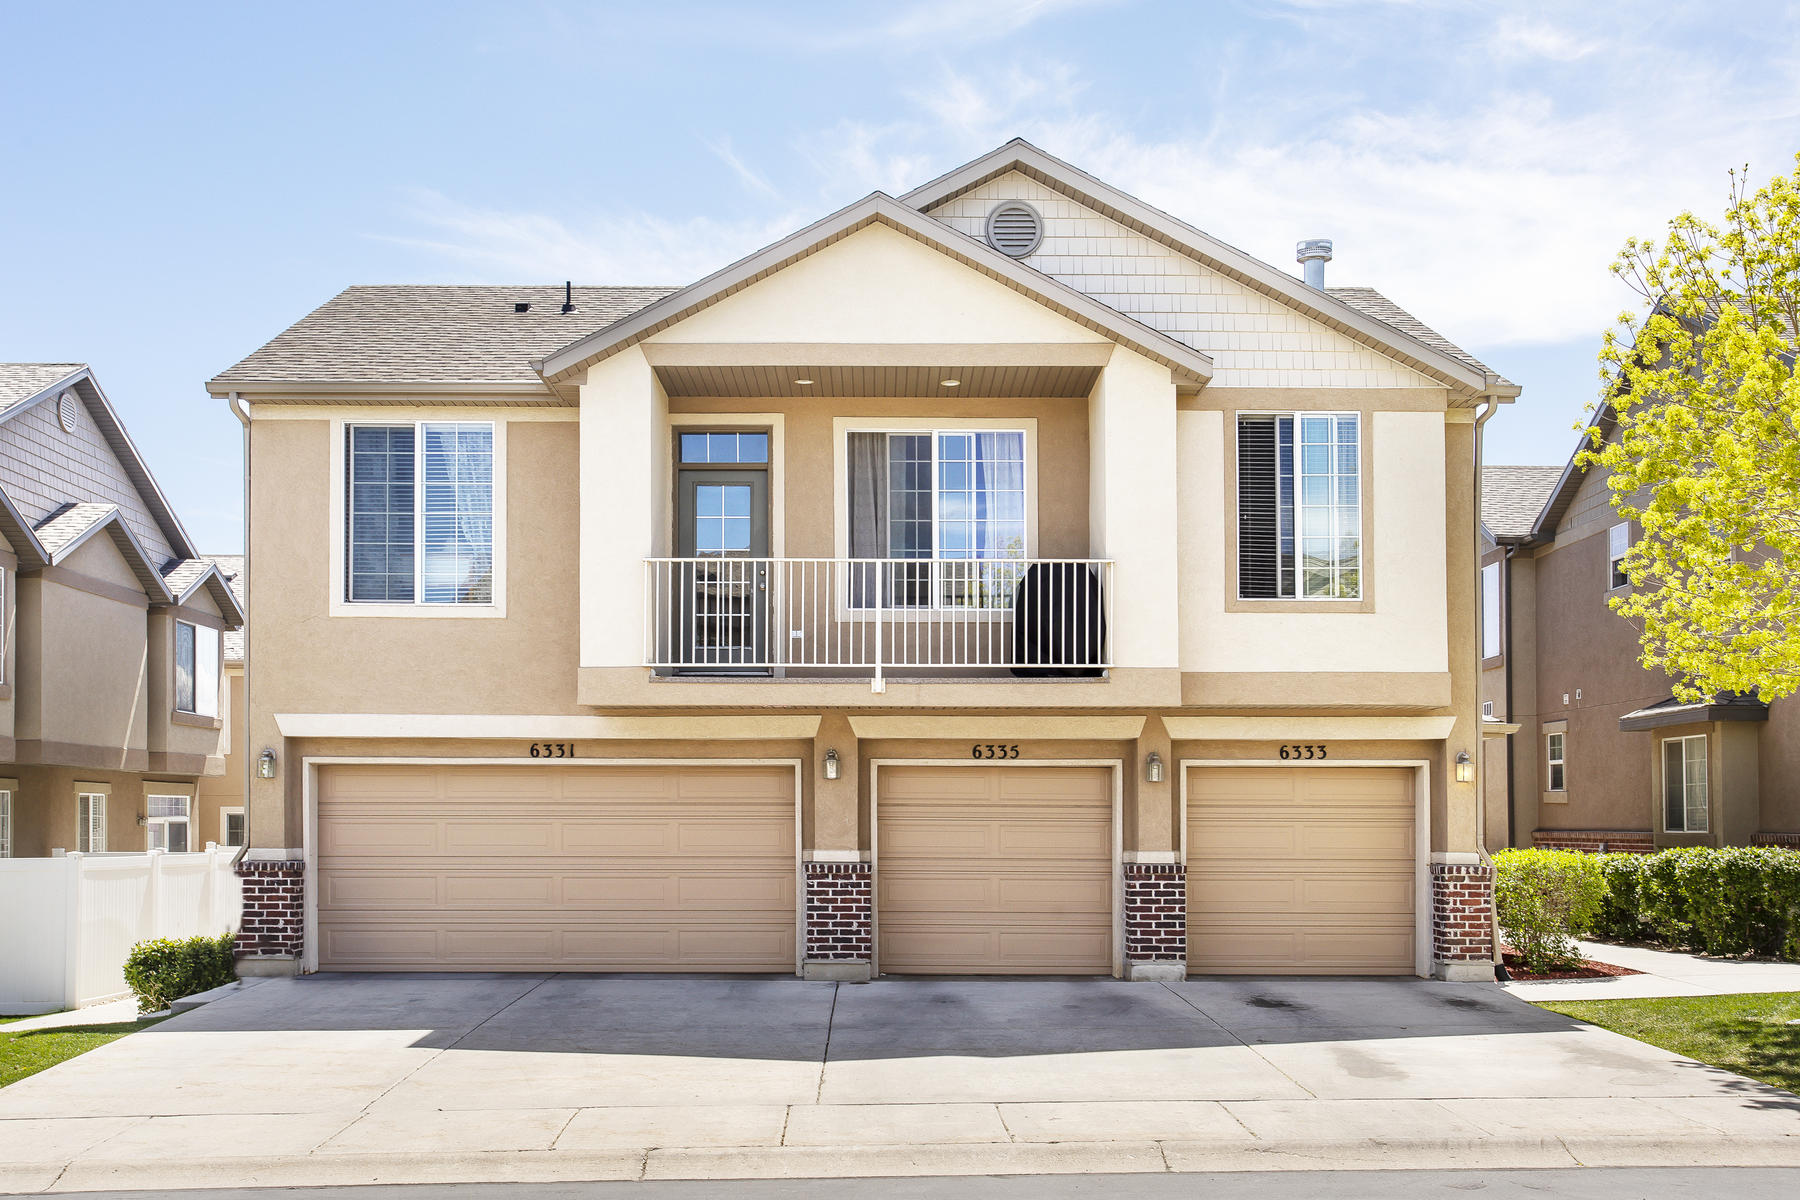 townhouses for Sale at Adorable Townhouse 6333 W Traveler Ln West Jordan, Utah 84081 United States